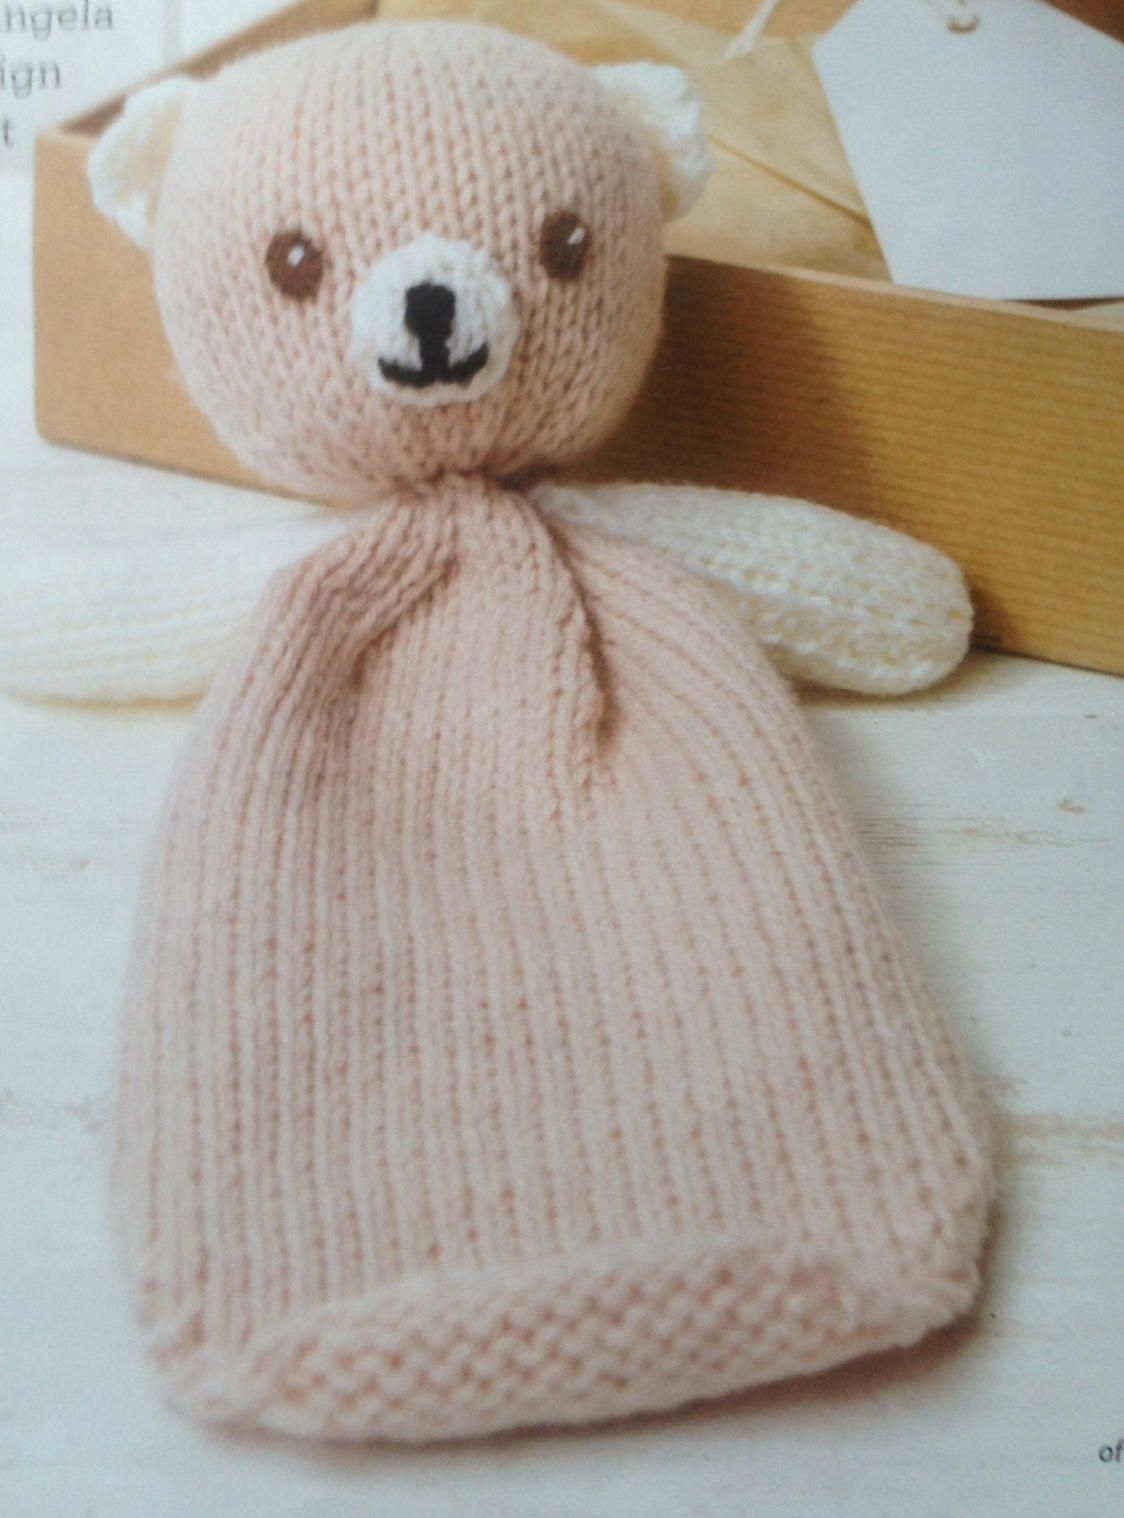 Teddy Bear Knitting Pattern Teddy Comforter Instant Down load ...